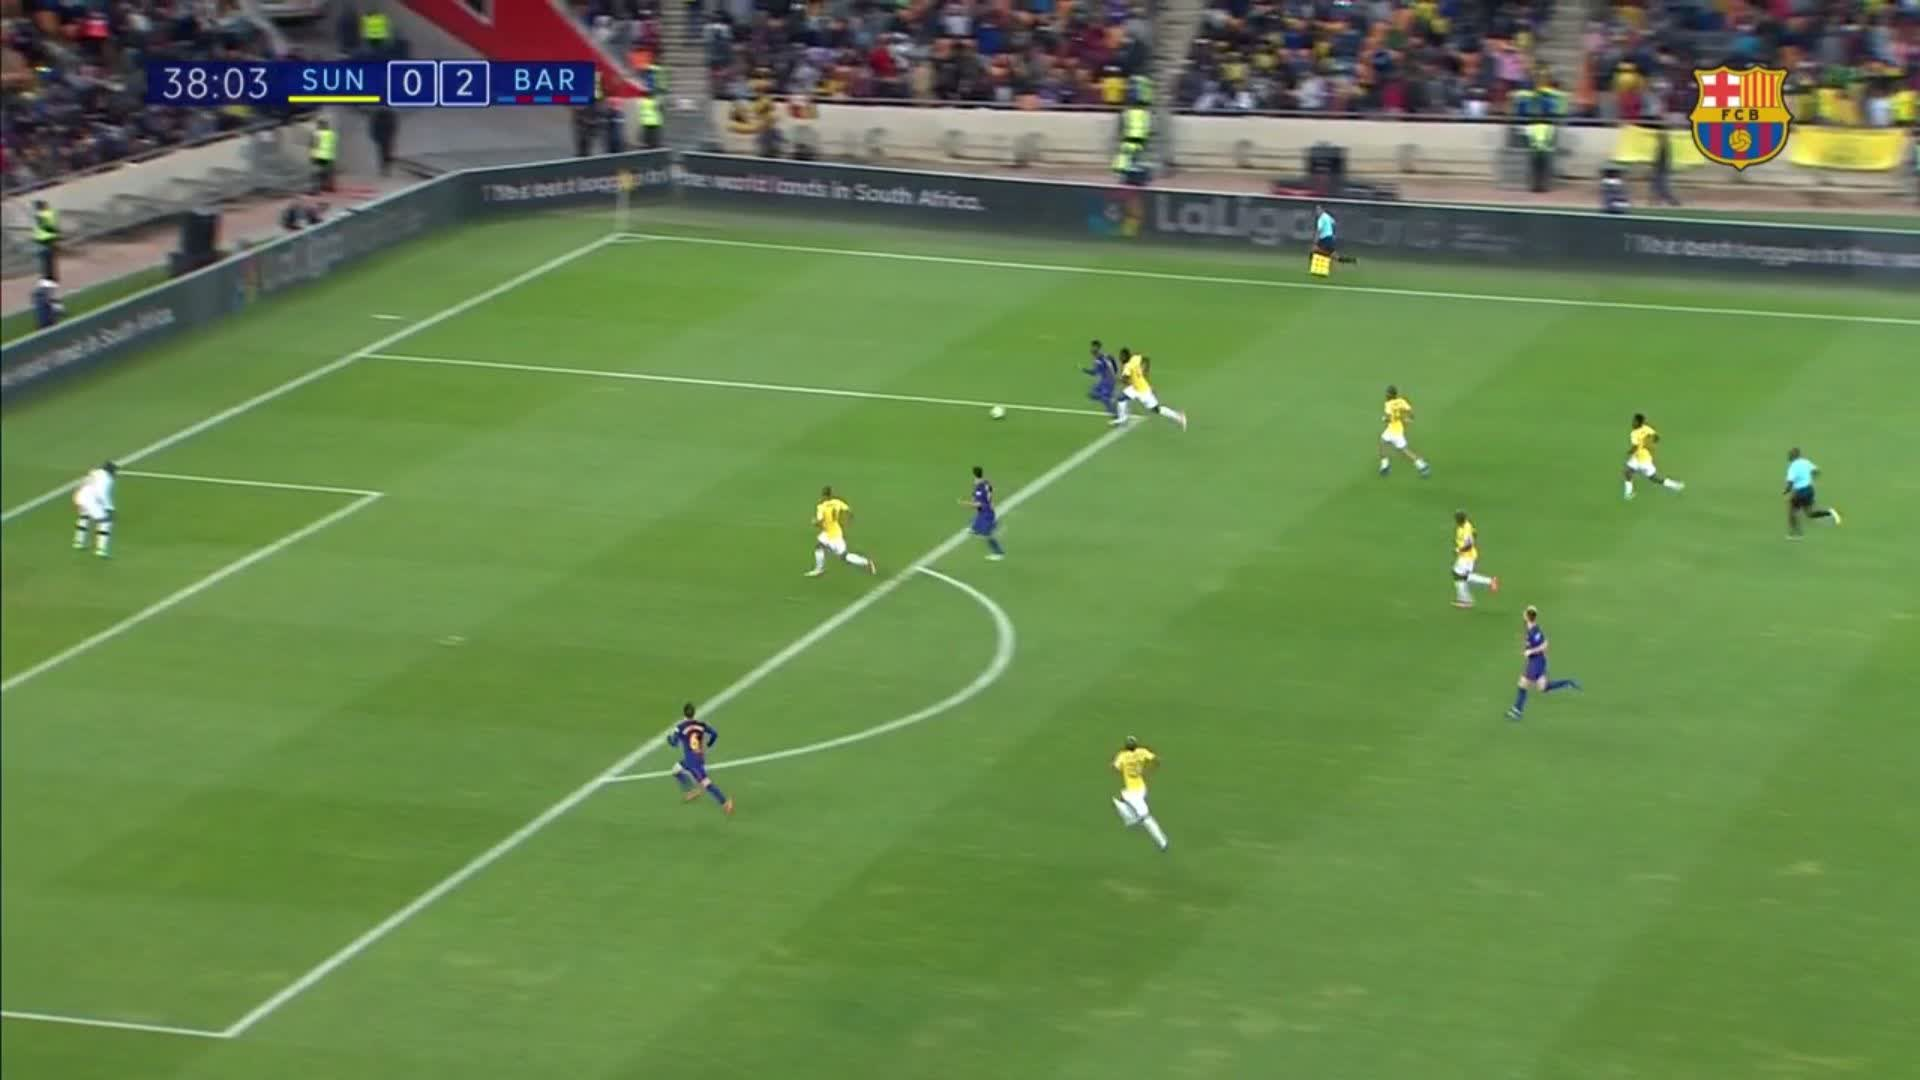 38: Against the post! @DenisSuarez6 almost adds another! #SundownsBarça (0-2) https://t.co/C9eDgN4axE